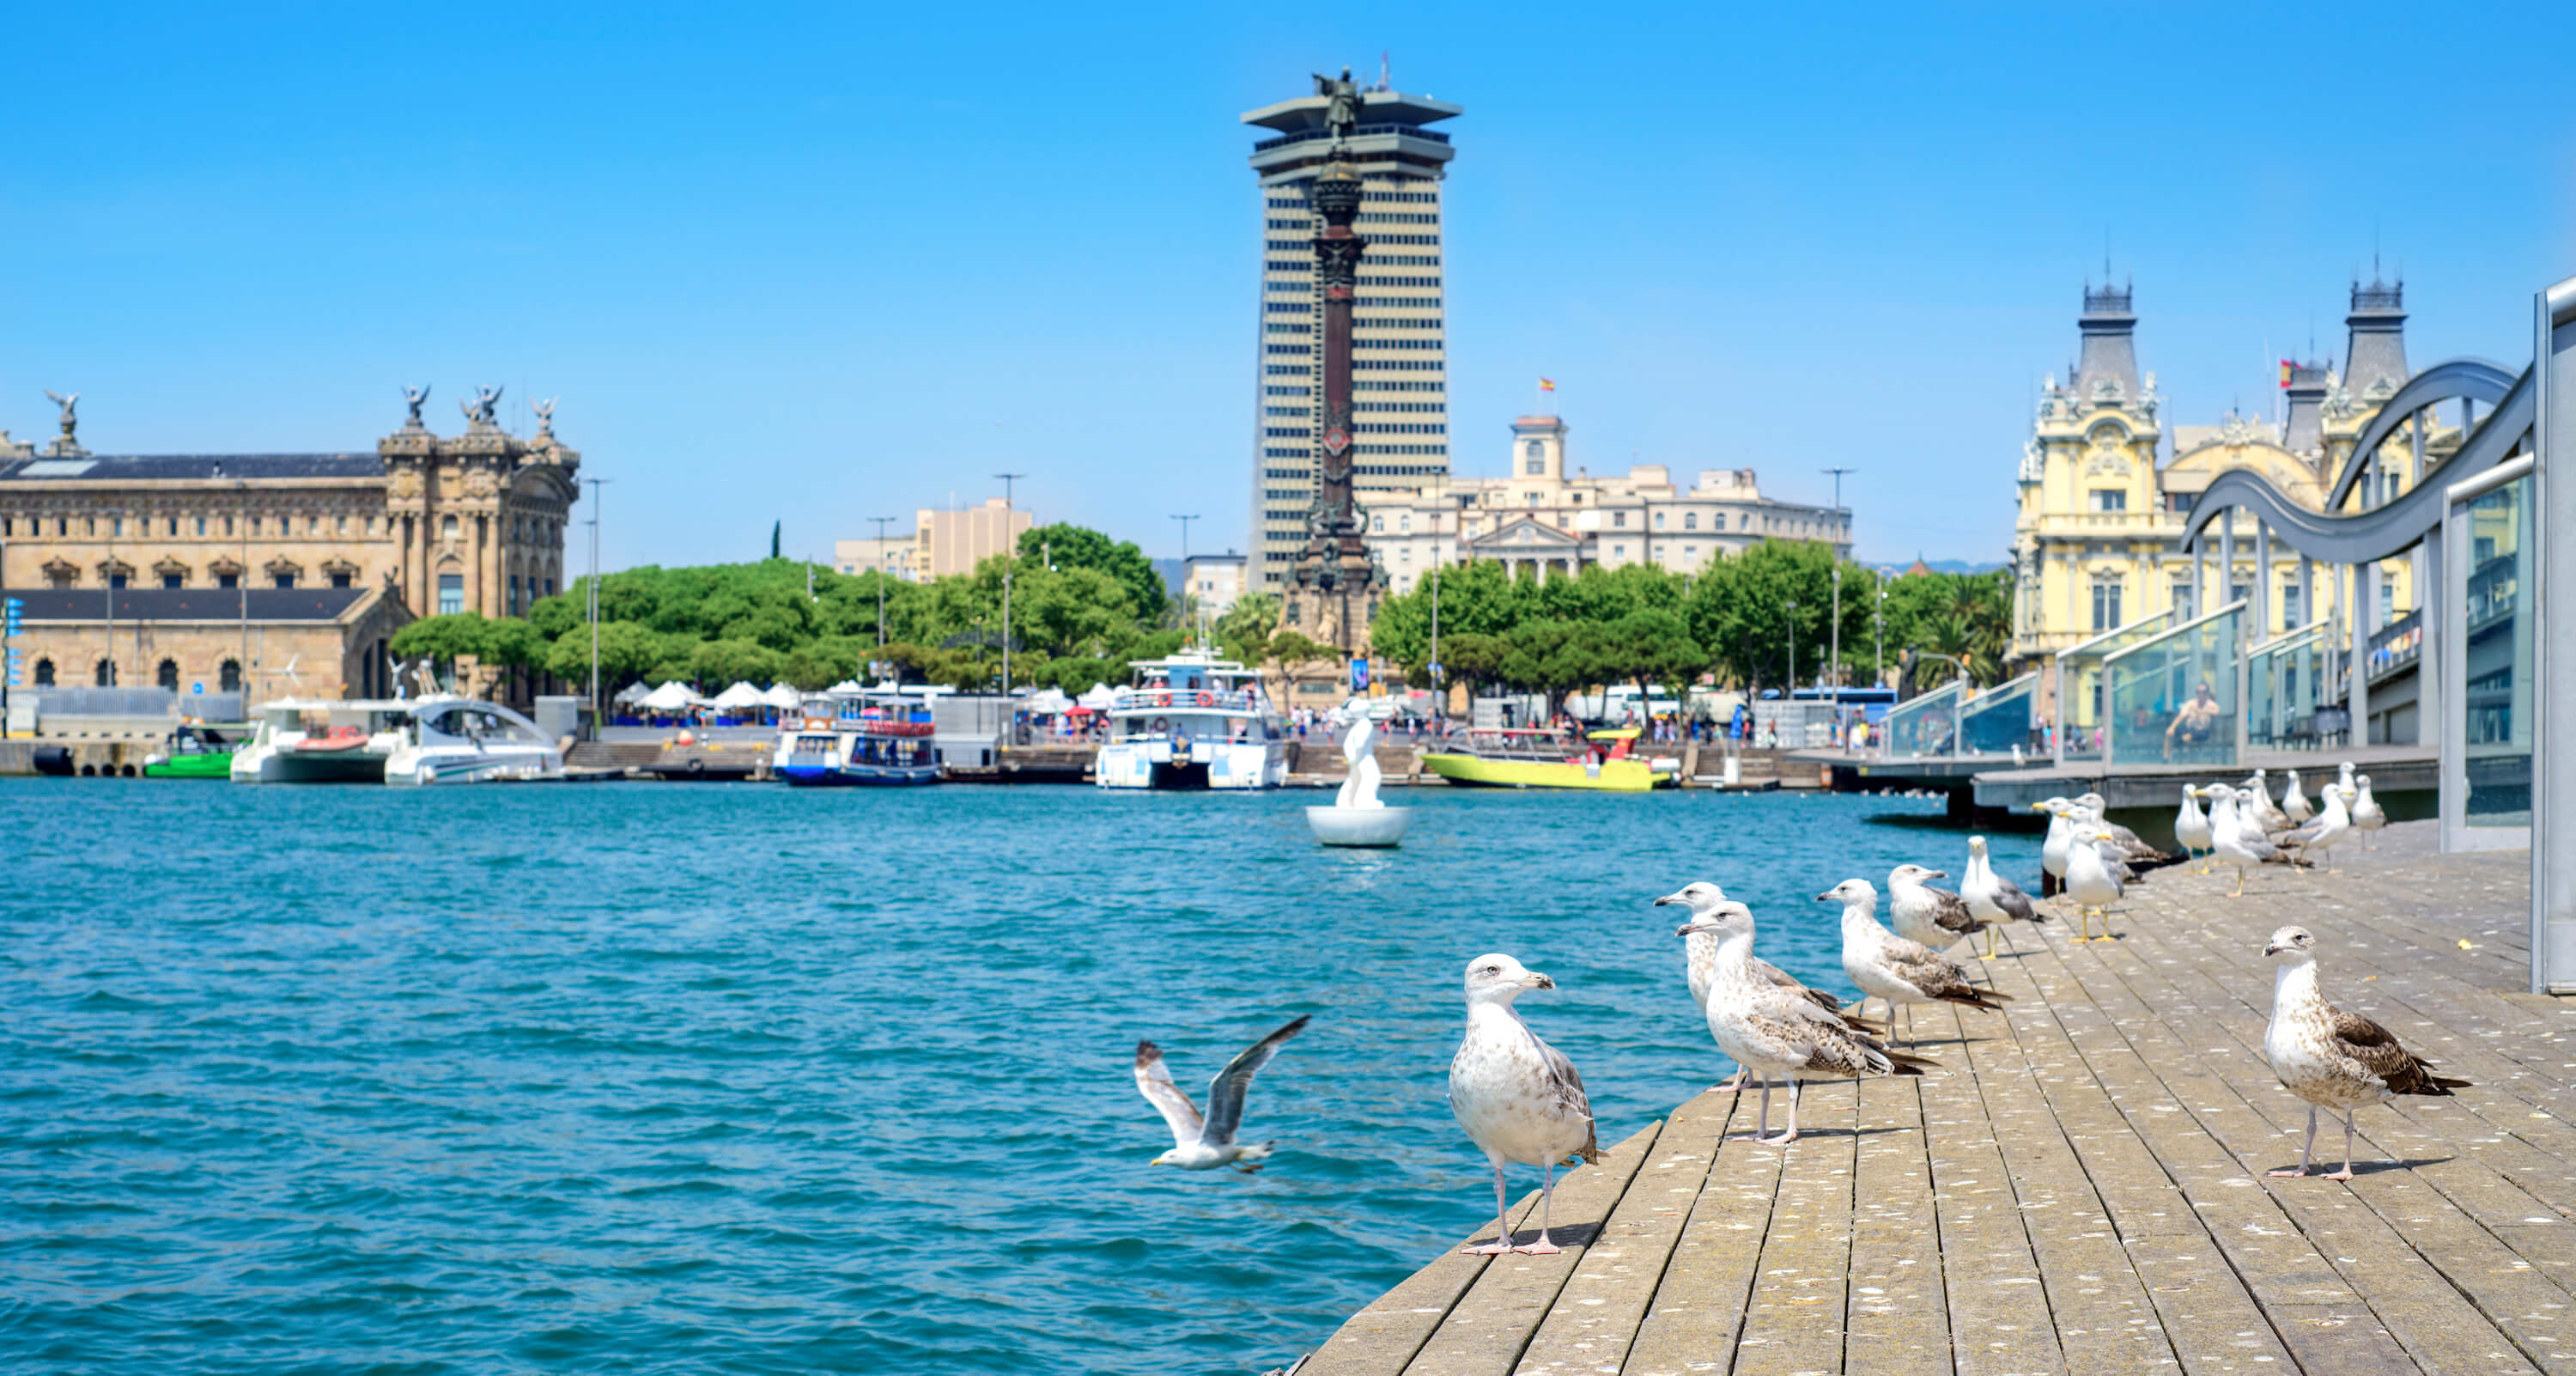 3 Day Barcelona Itinerary - Port Vell